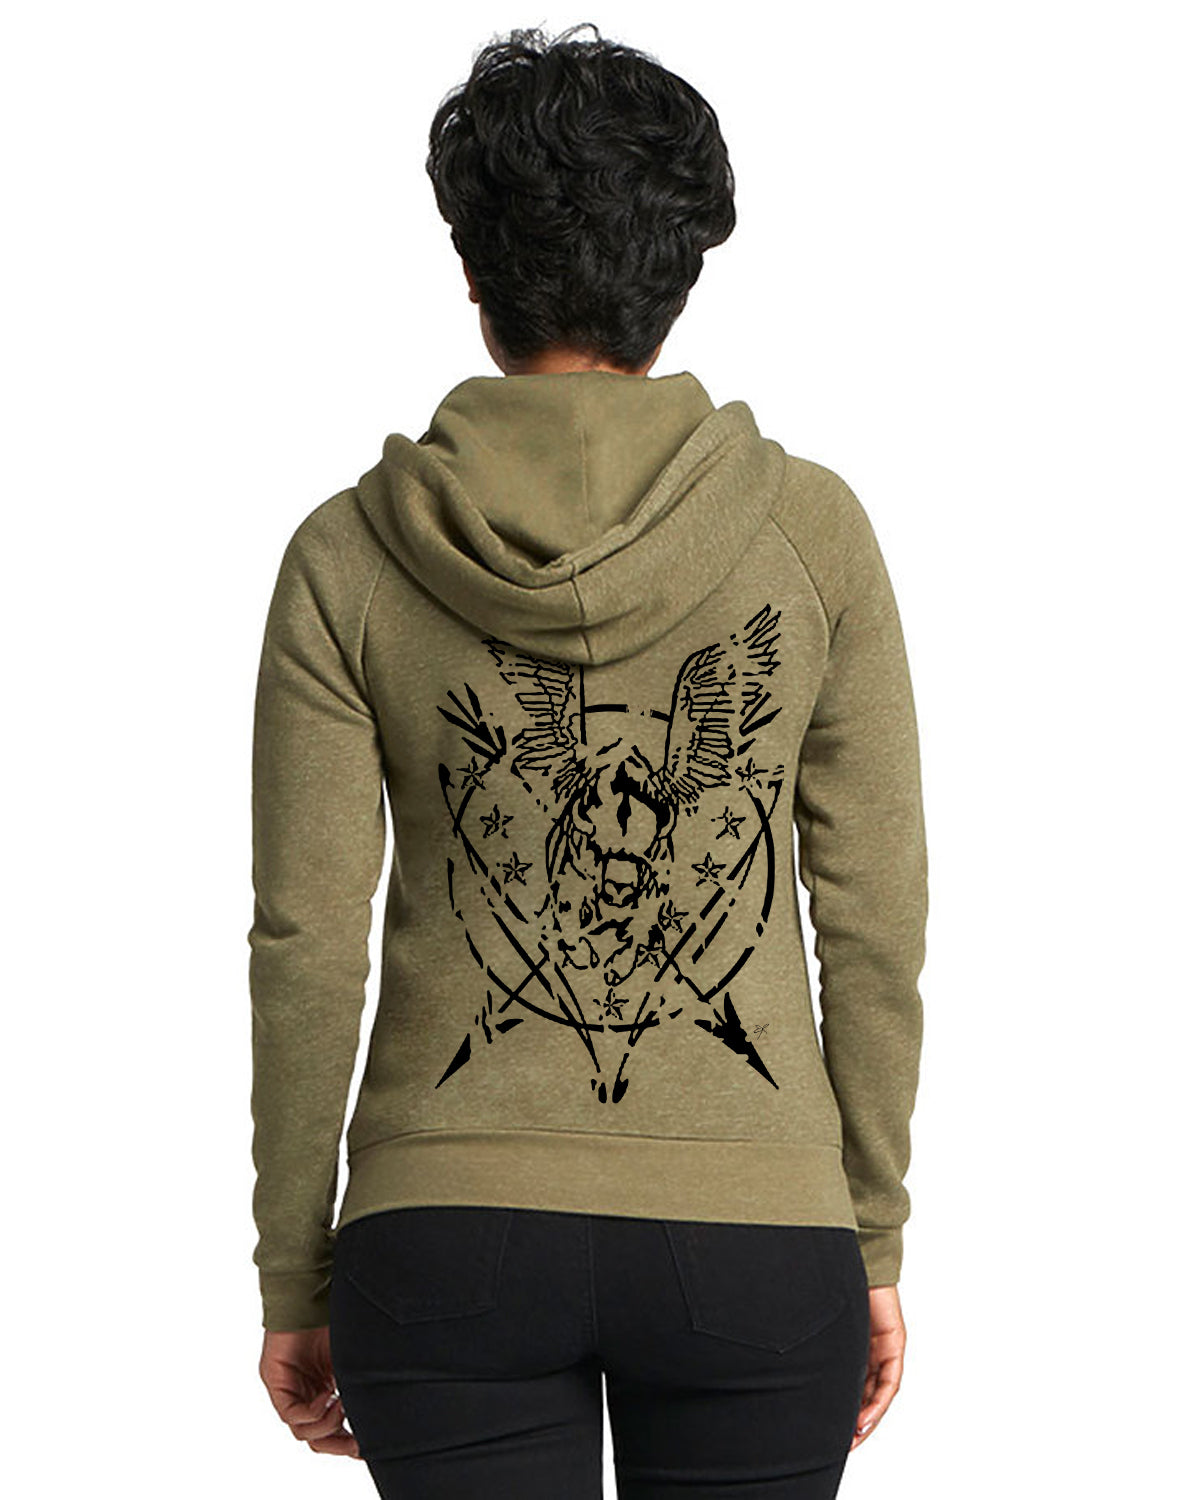 Flying Buffalo Grunge Seal Unisex Zip-up Hoodie